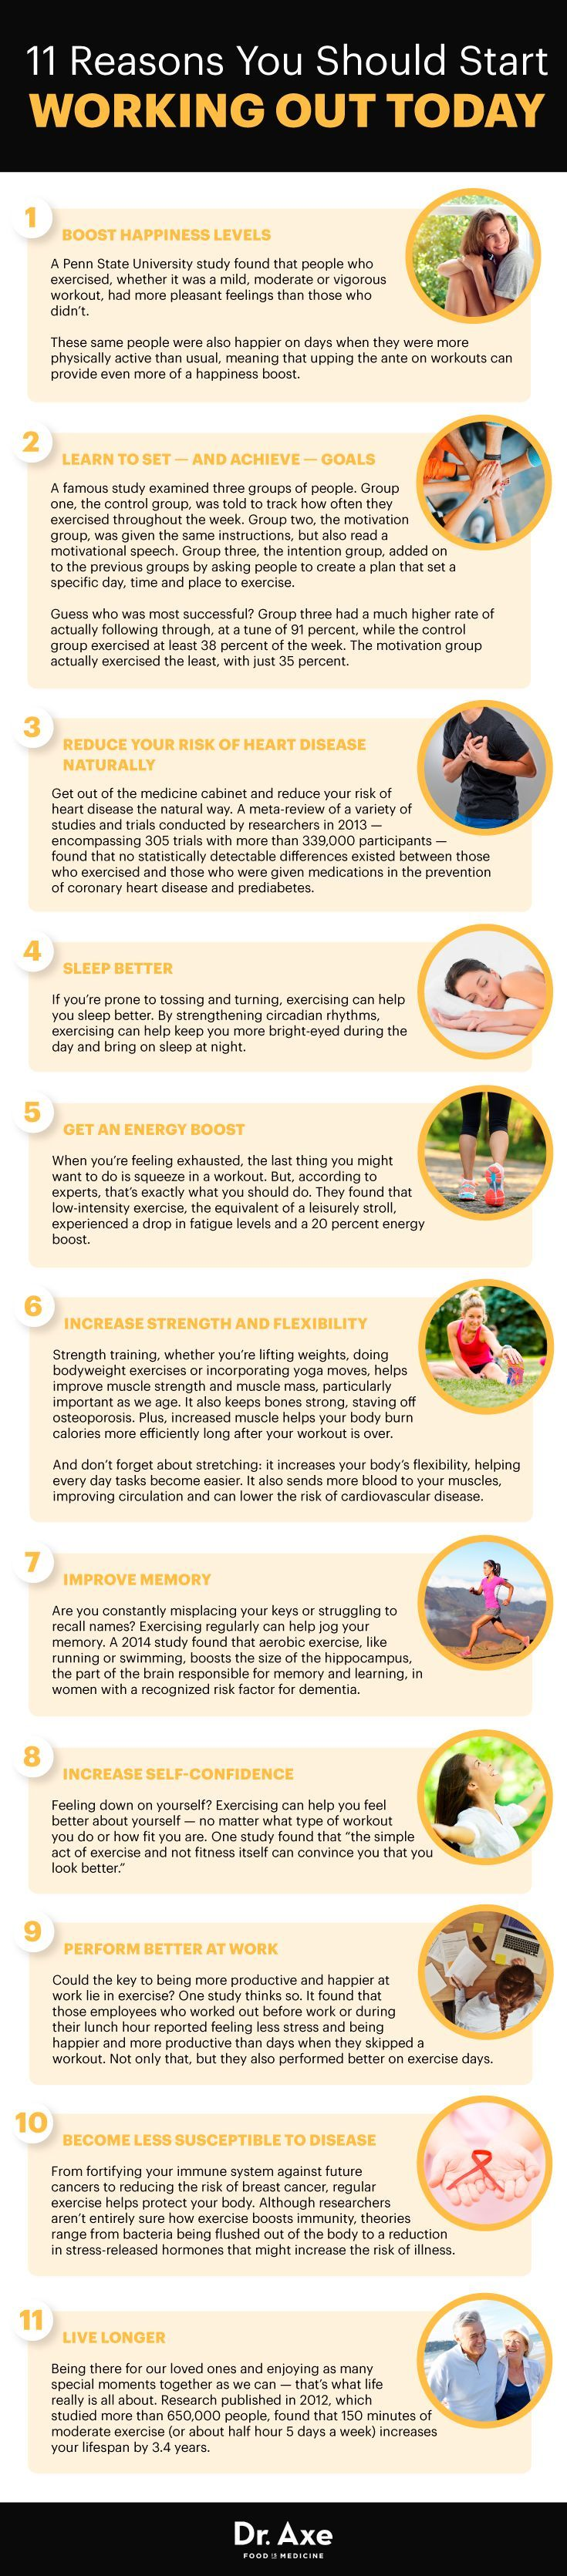 11 Benefits of Exercise! #healthyliving #healthylifestyle